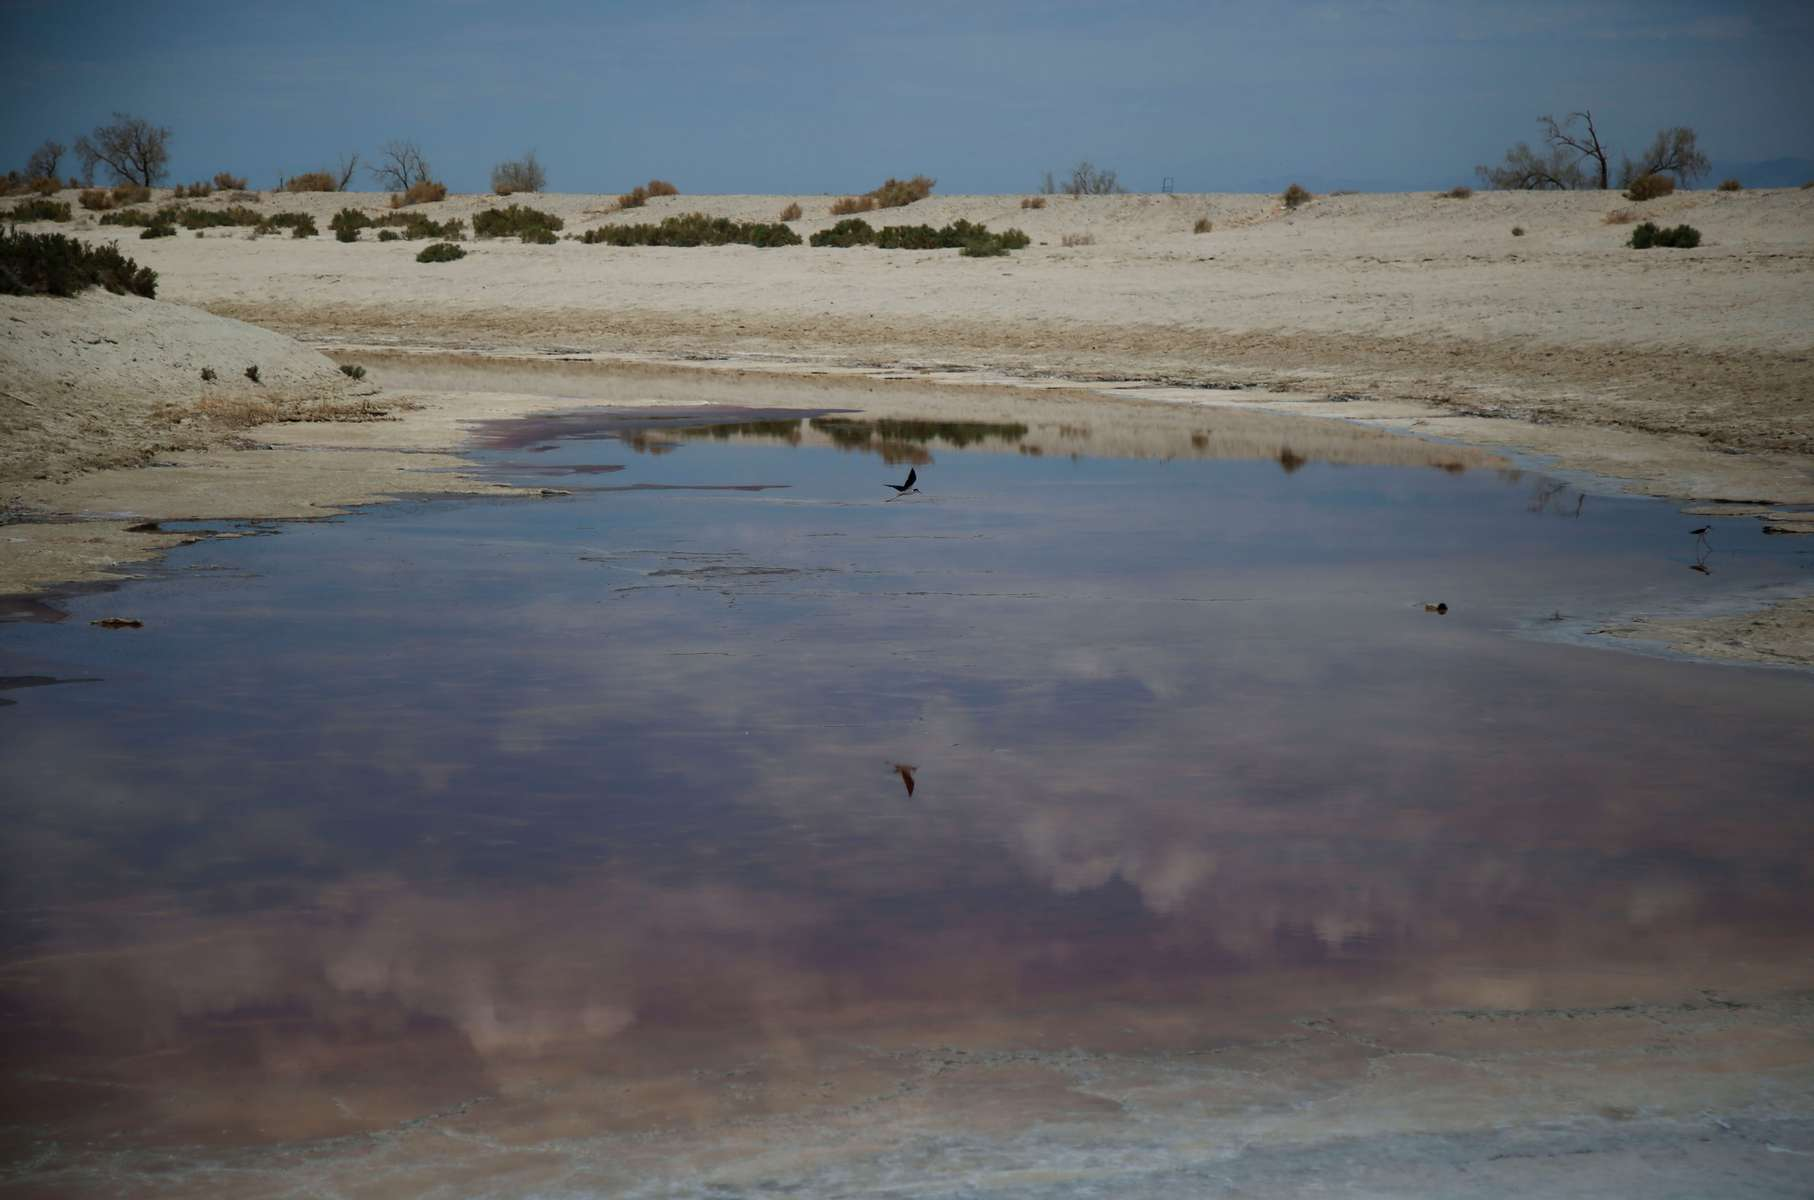 A bird flies over an almost evaporated canal, with toxic residues, near the Salton Sea as California faces its worst drought since 1977, in Salton City, California, U.S., July 4, 2021.